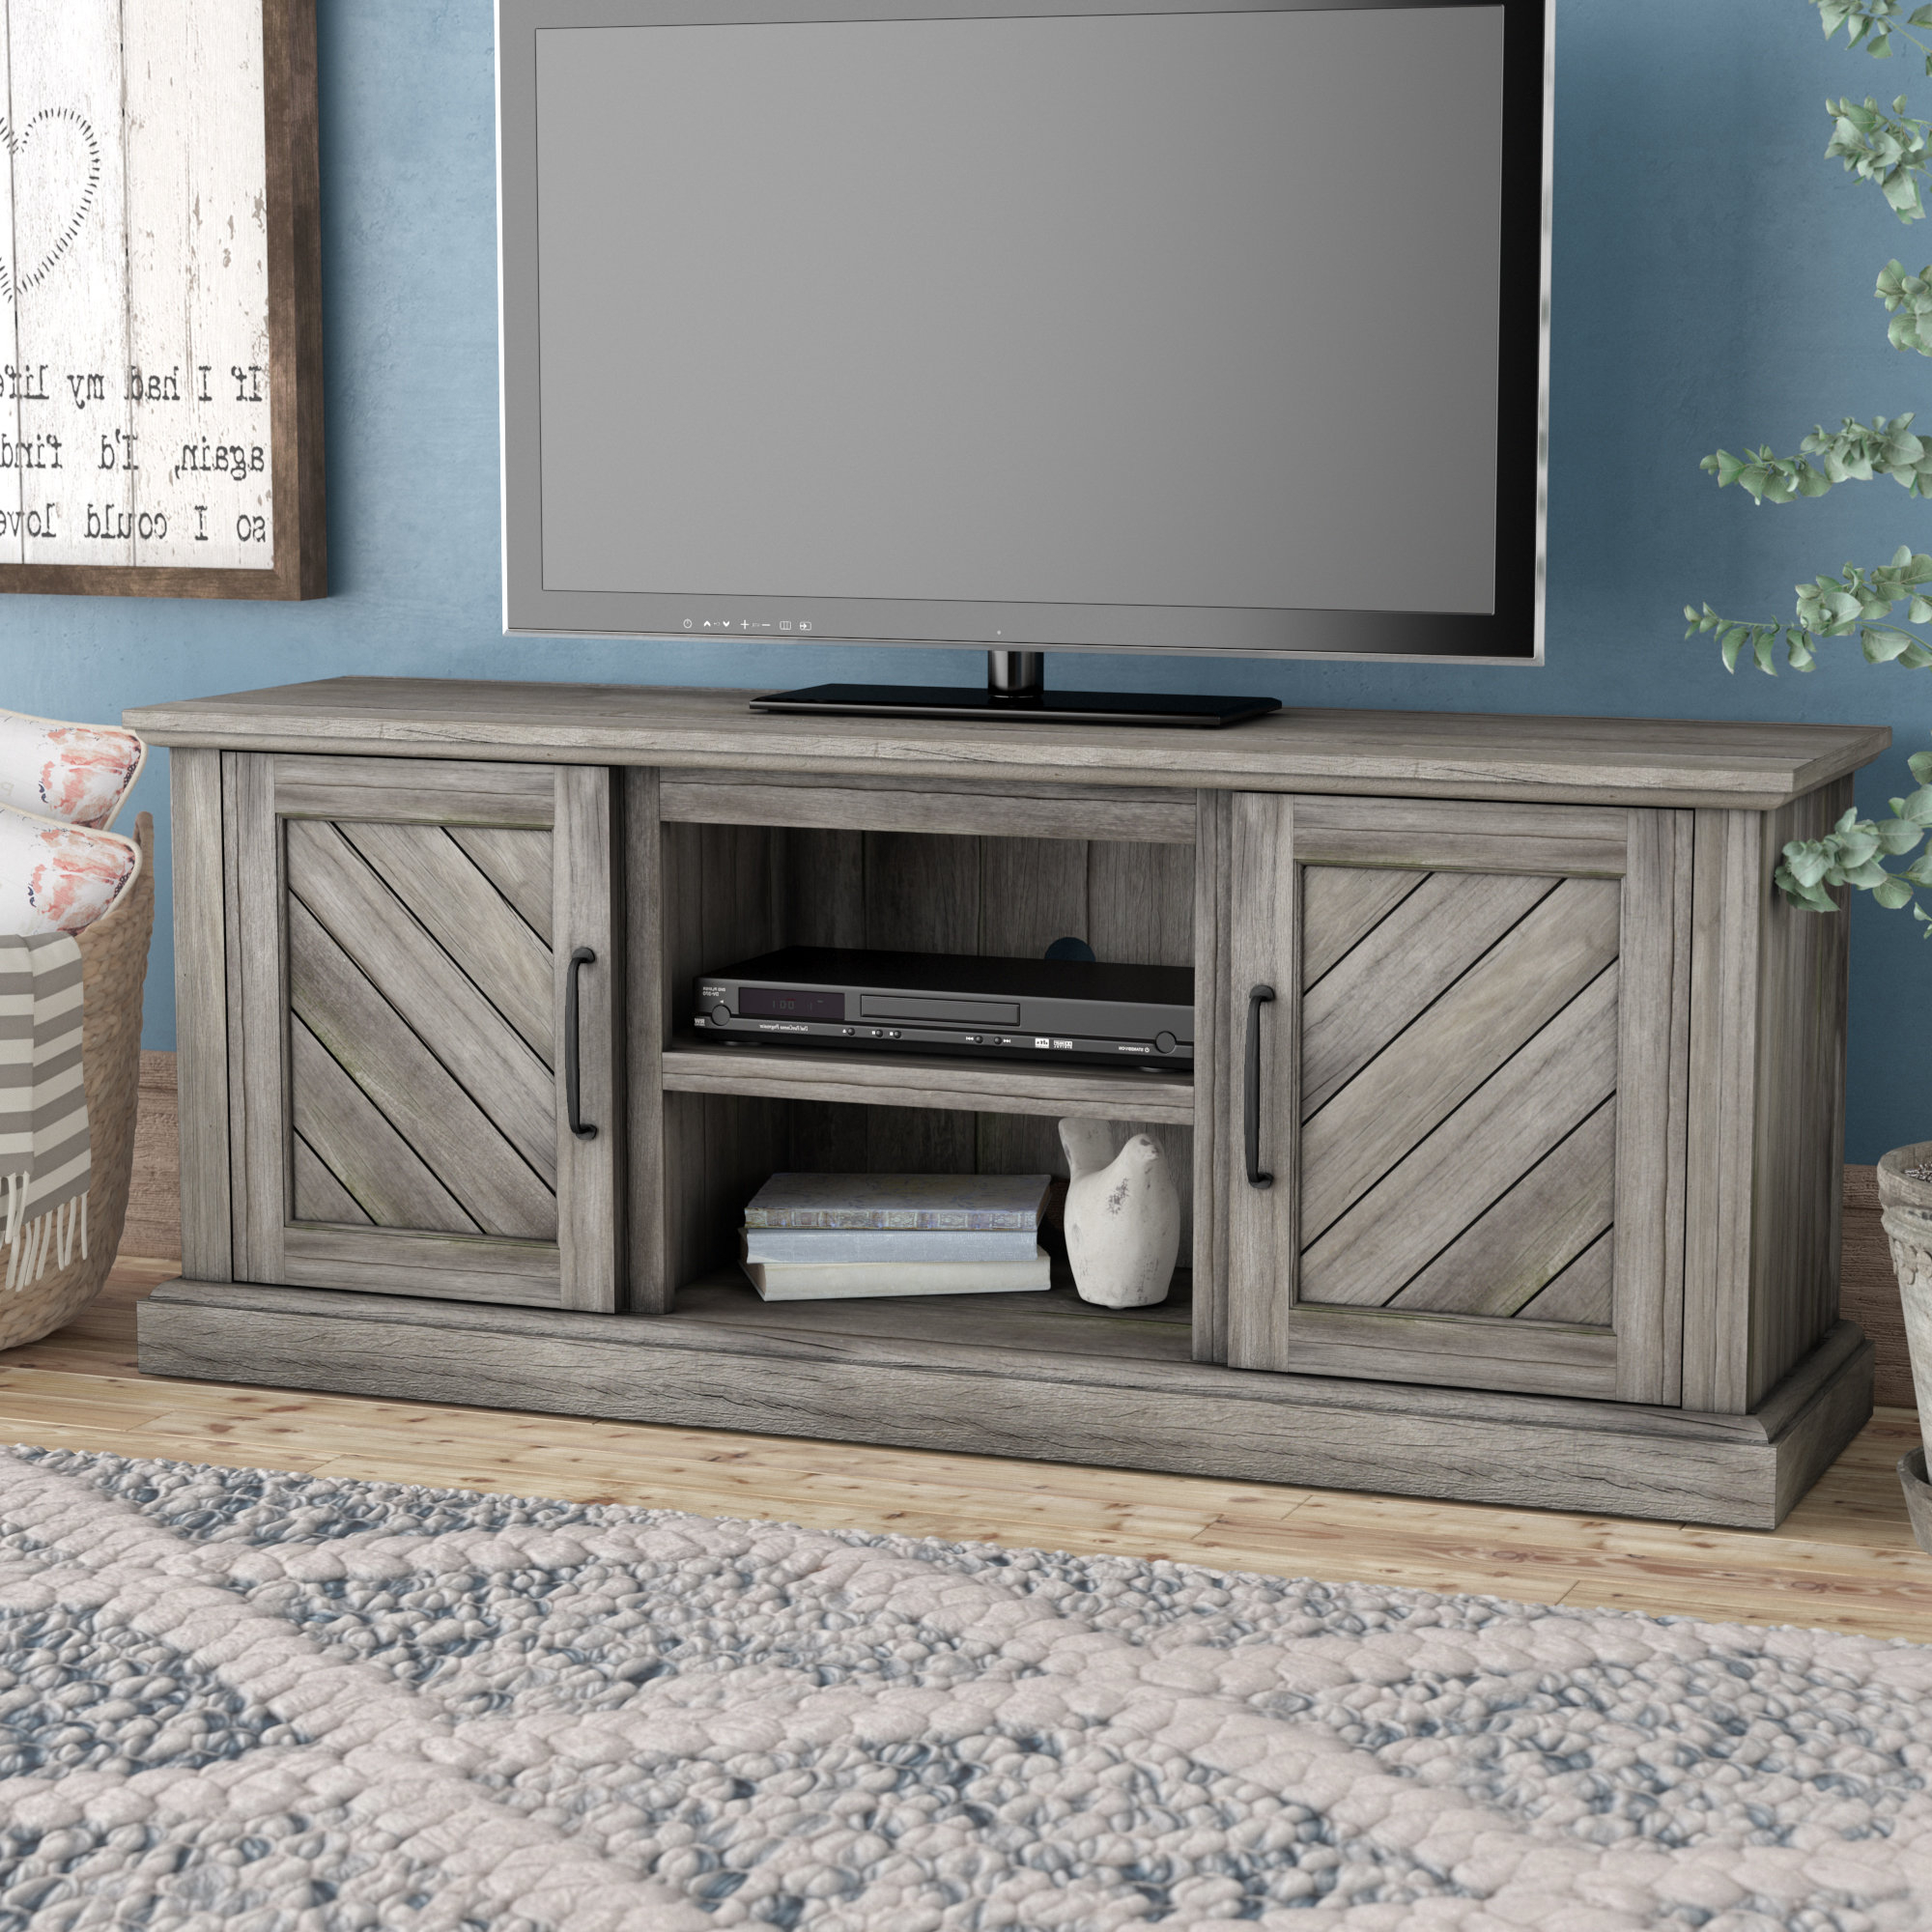 Tv Stand For 75 Inch Tv | Wayfair Within Laurent 60 Inch Tv Stands (View 20 of 20)